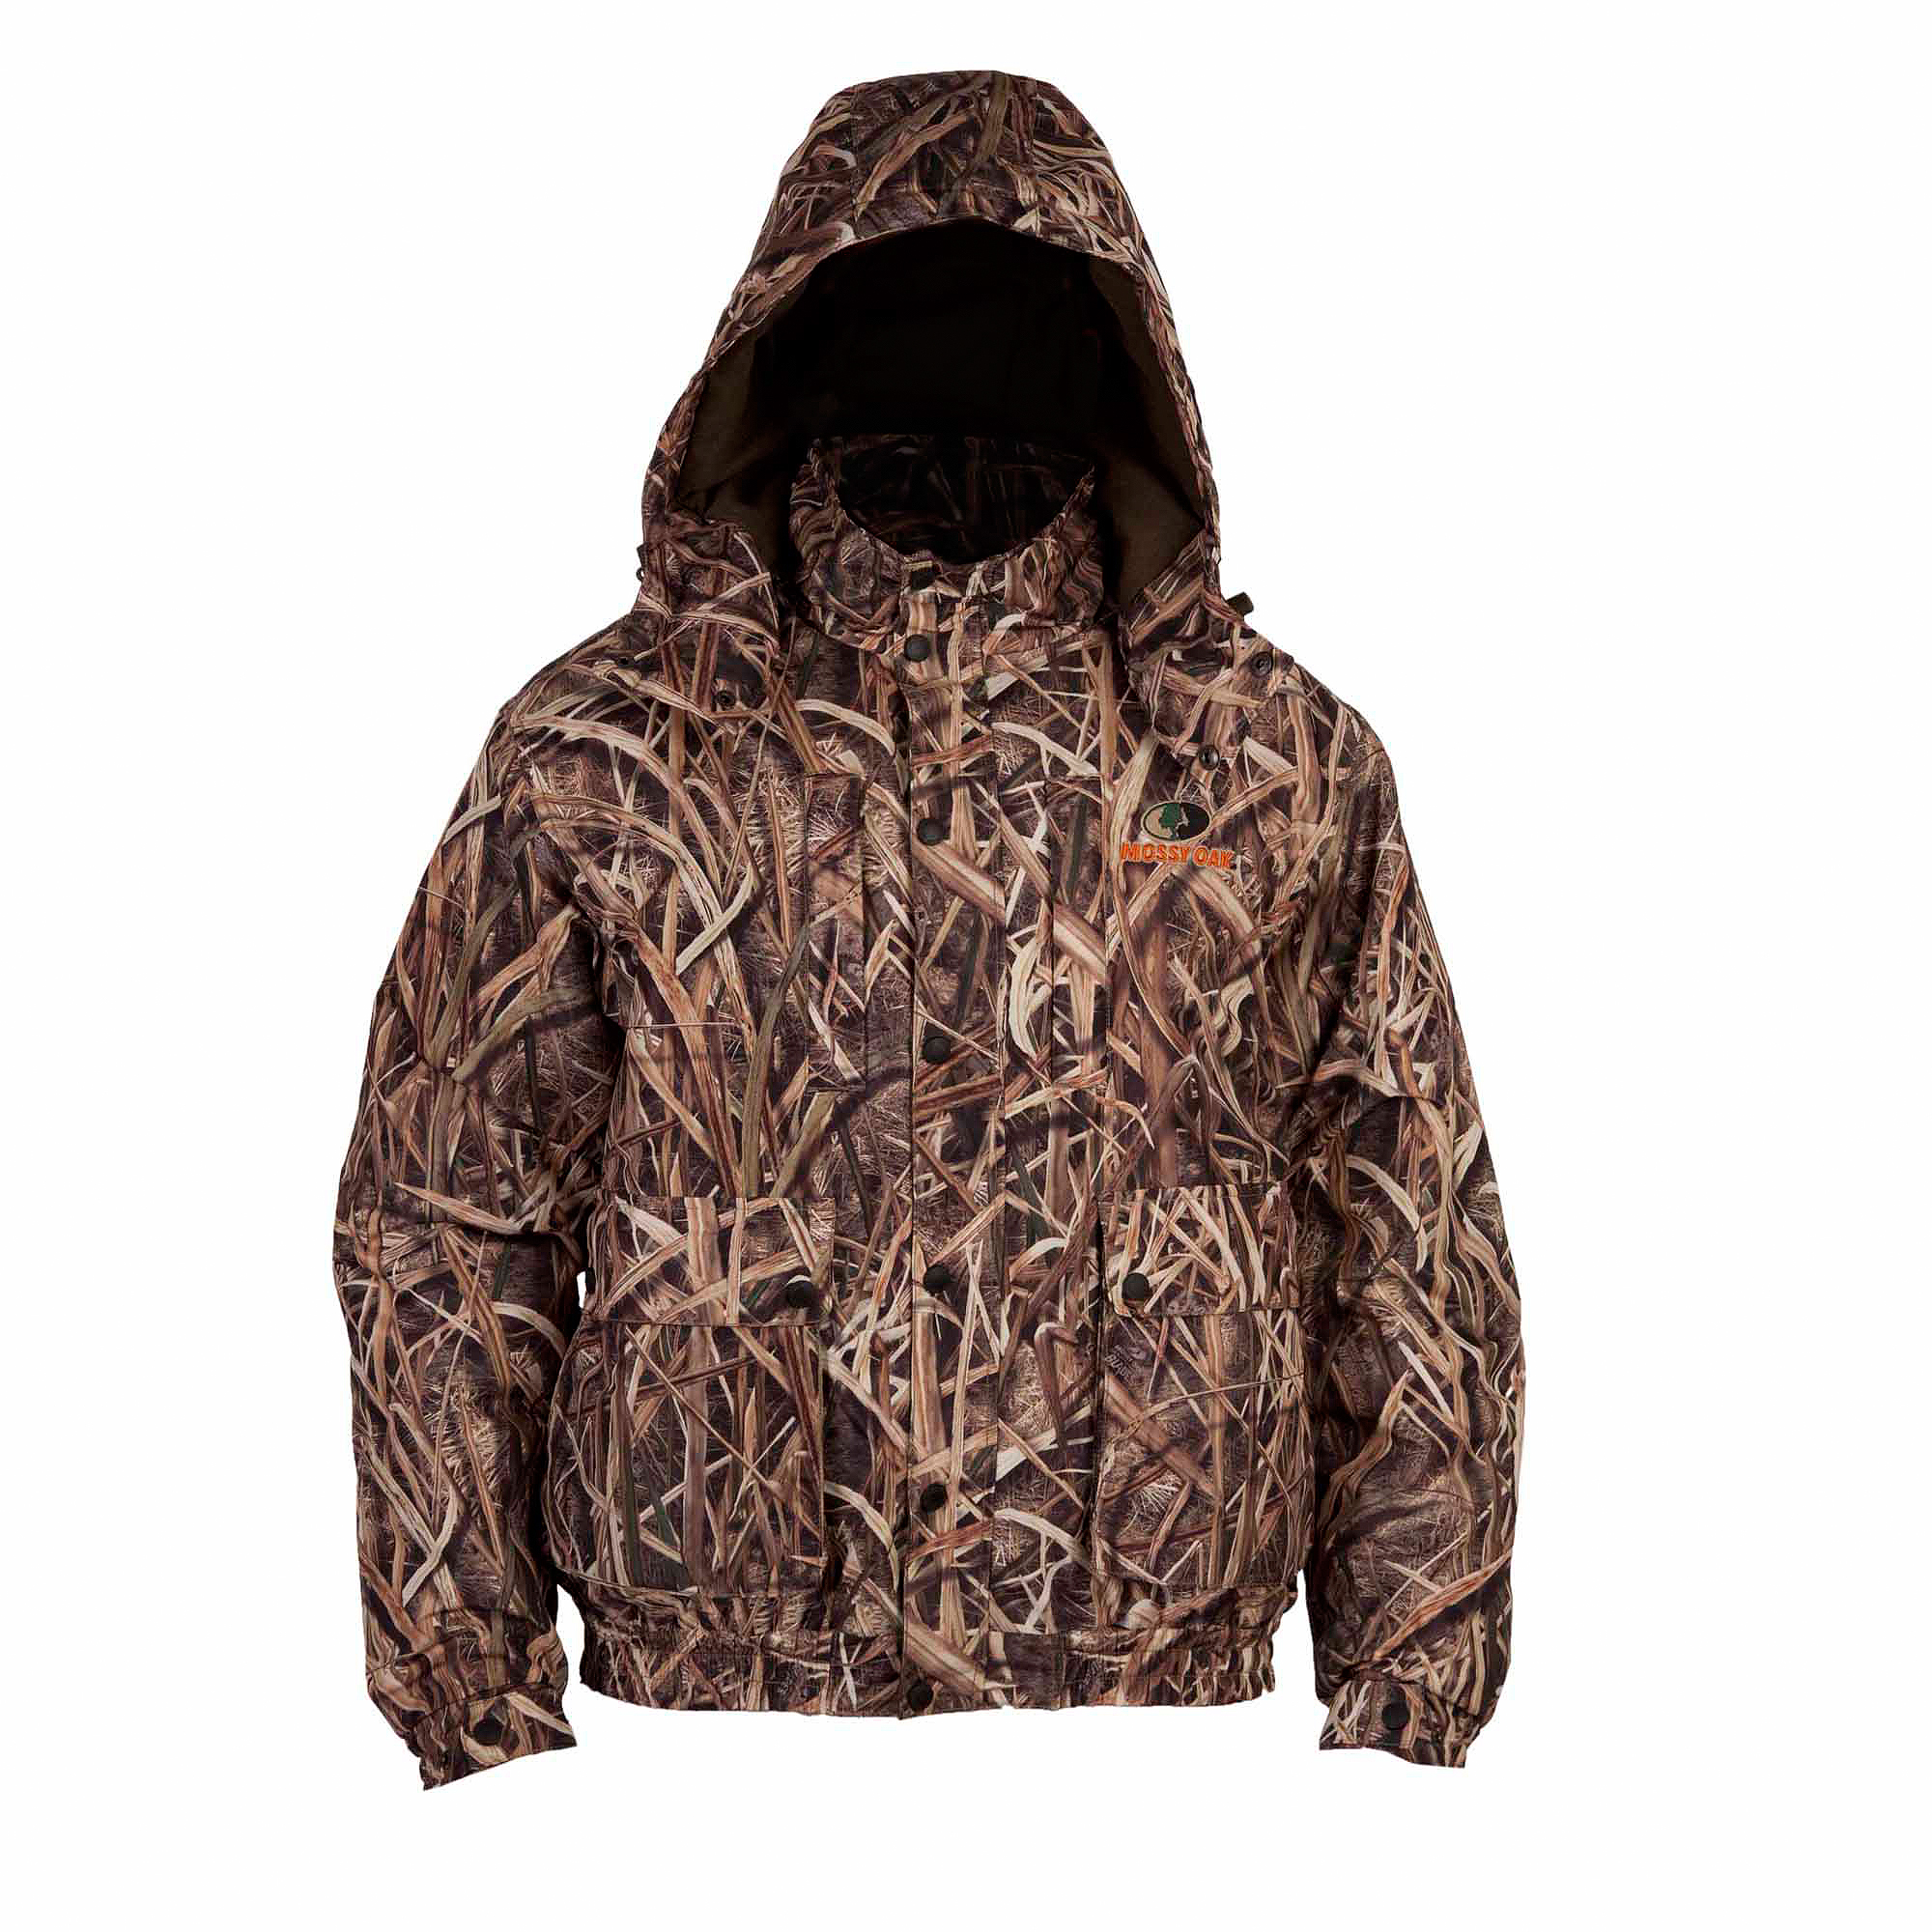 Mossy Oak Shadowgrass Blades Men's Waterfowl Insulated Jacket by LUCKY ZONE DESIGN